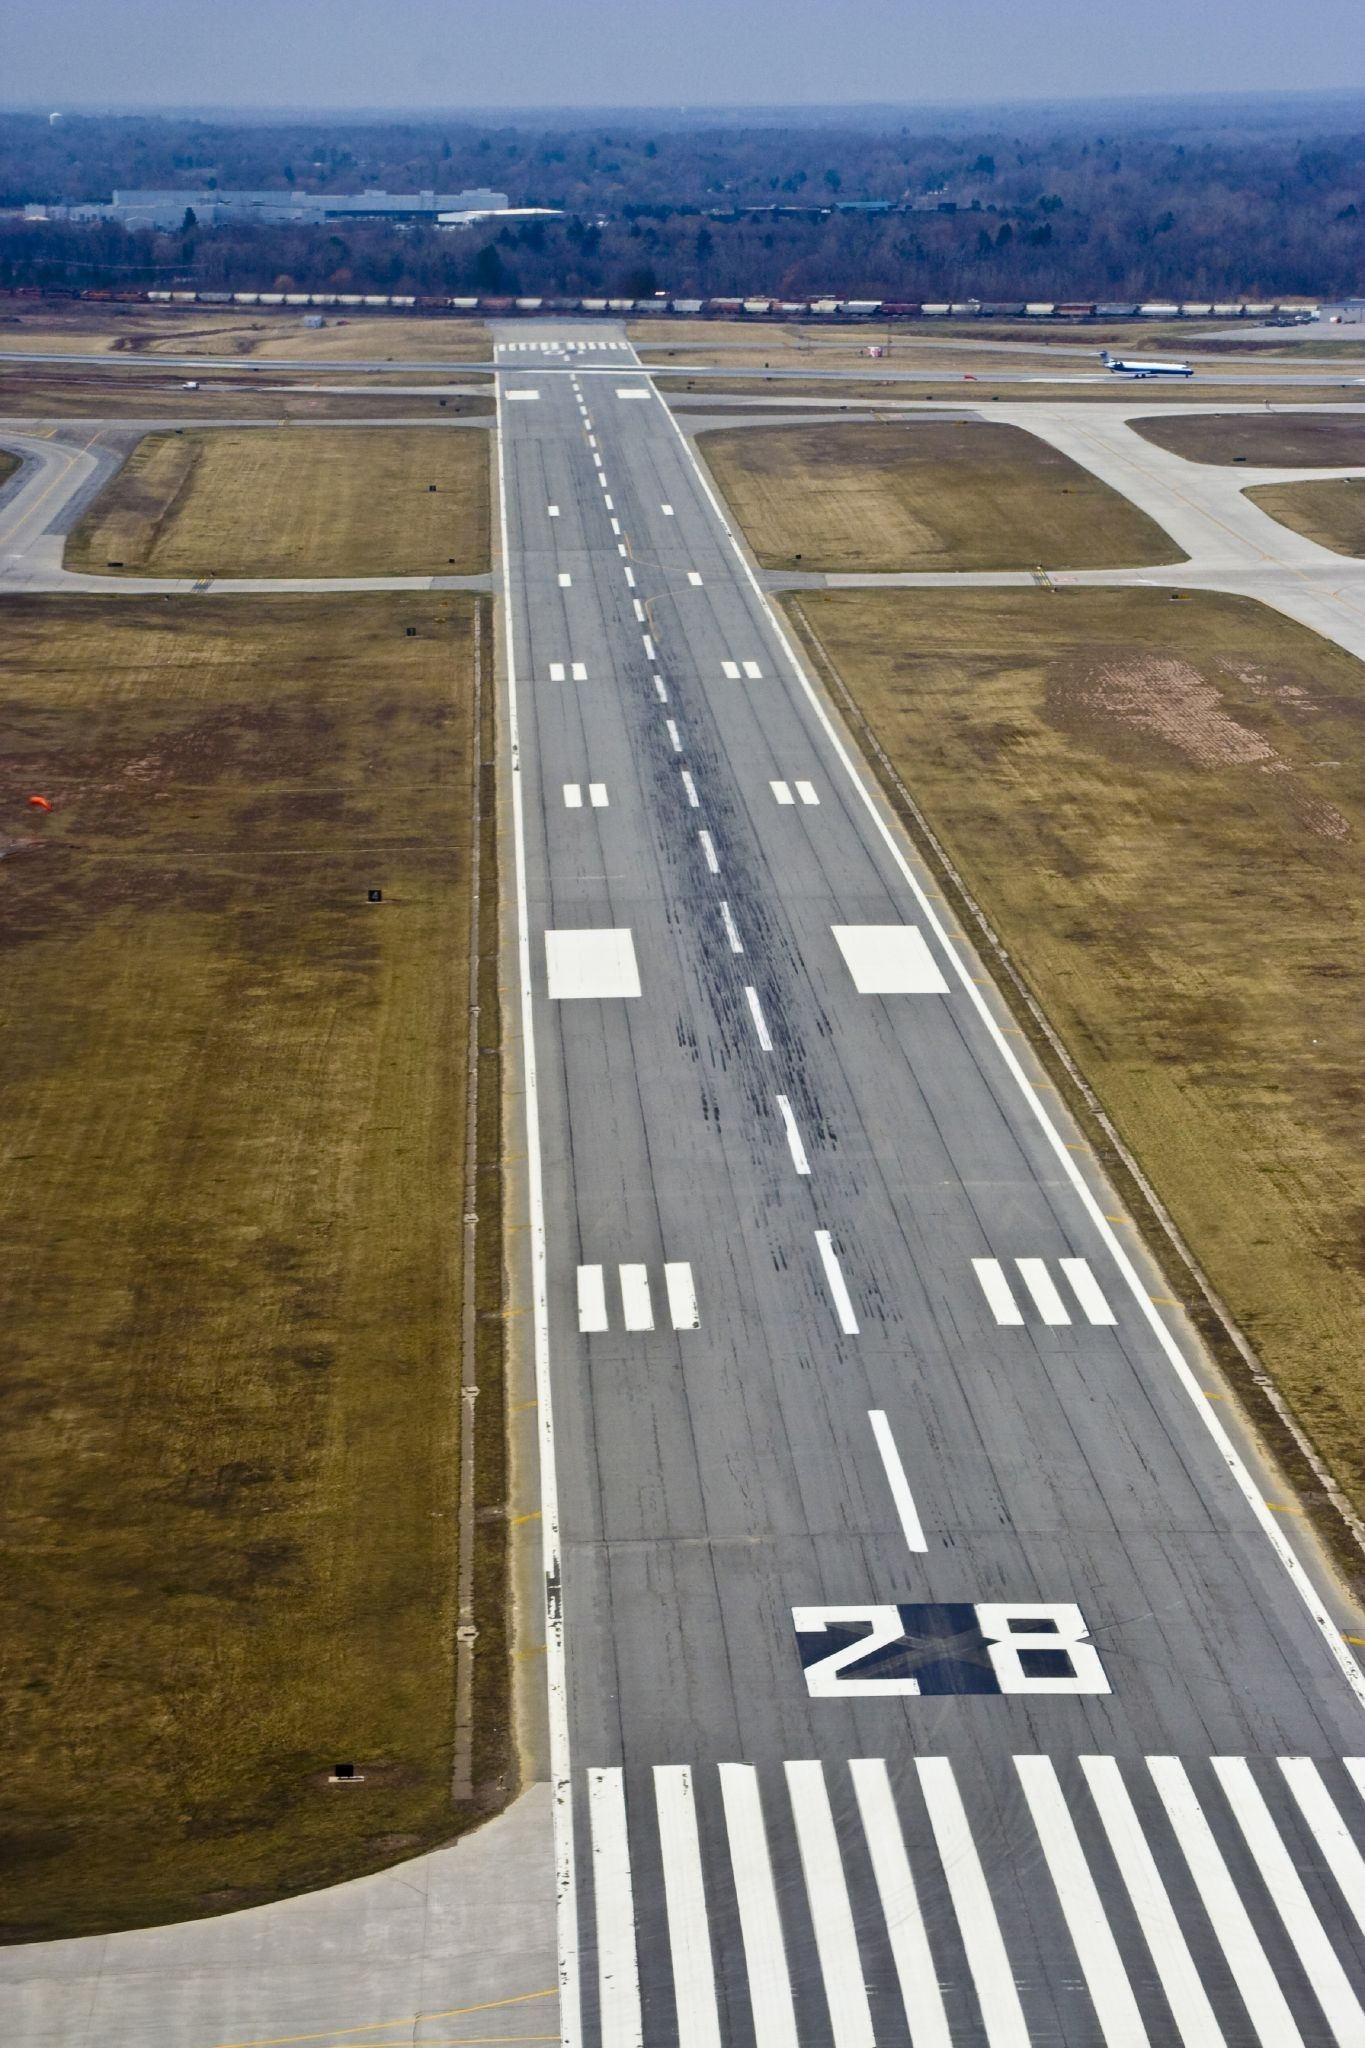 airport runway design - Google 搜尋 | NET-FL | Pinterest